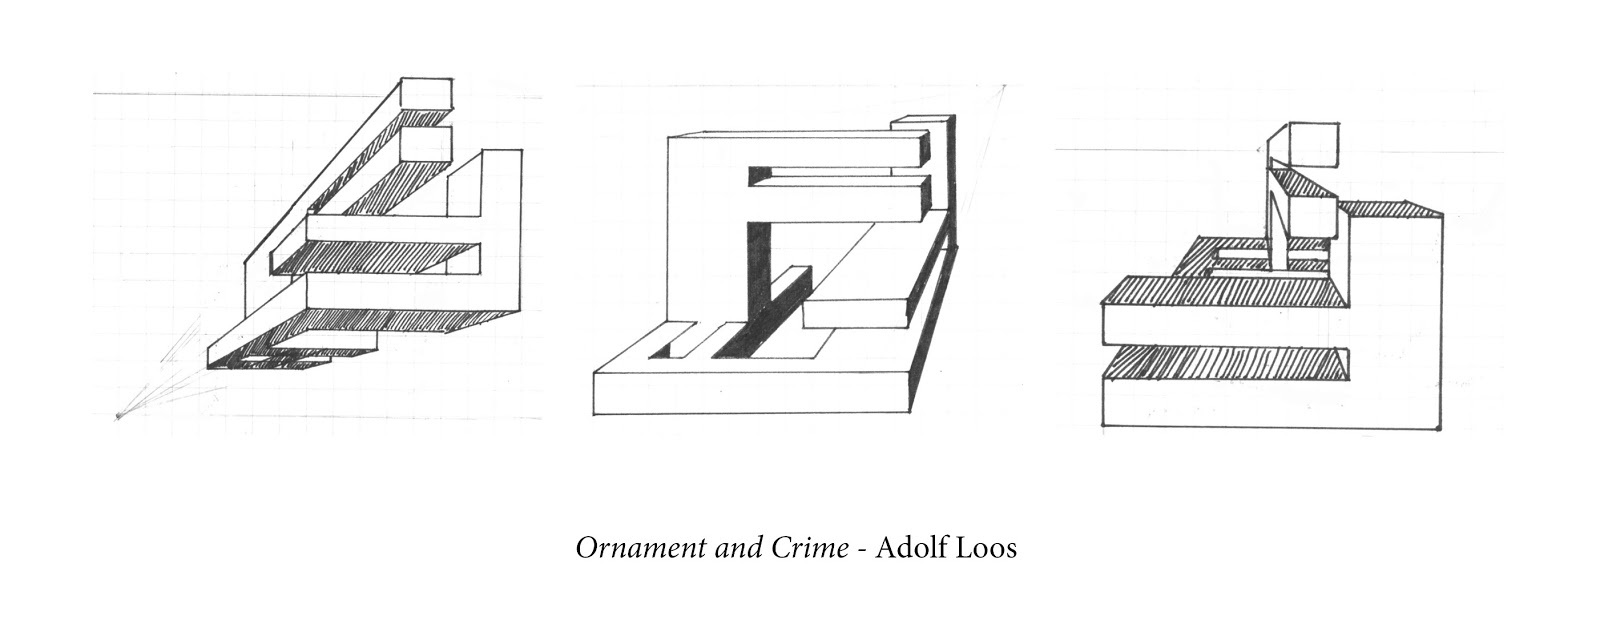 ornament and crime by adolf loos Quotes by austrian architect adolf loos adolf franz karl viktor maria loos was an austrian architect he was influential in european modern architecture, and in his essay ornament and crime.